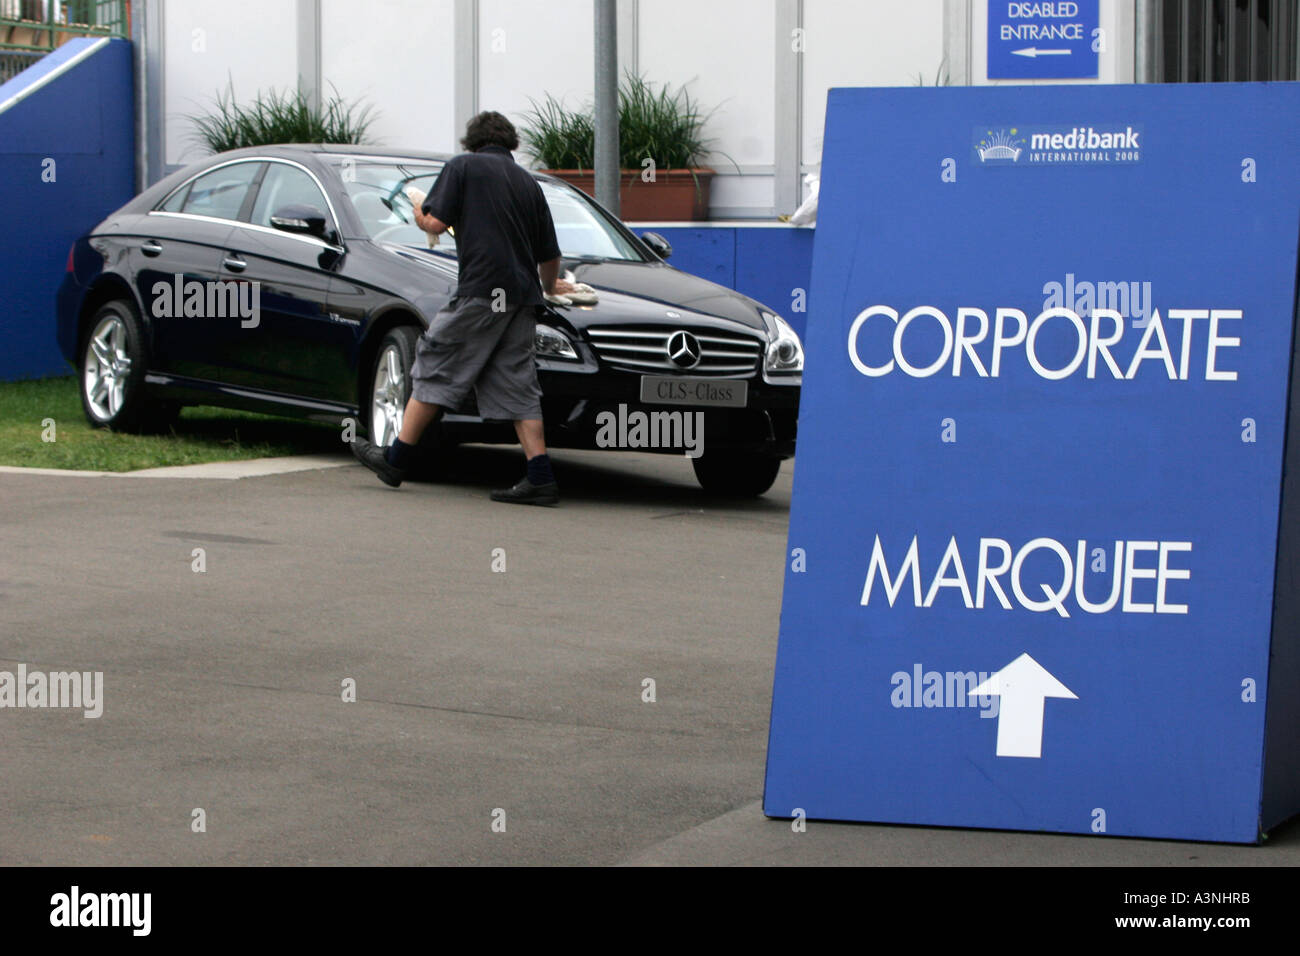 A young man polishes the latest model Mercedes Benz at a sports event the the company sponsors - Stock Image